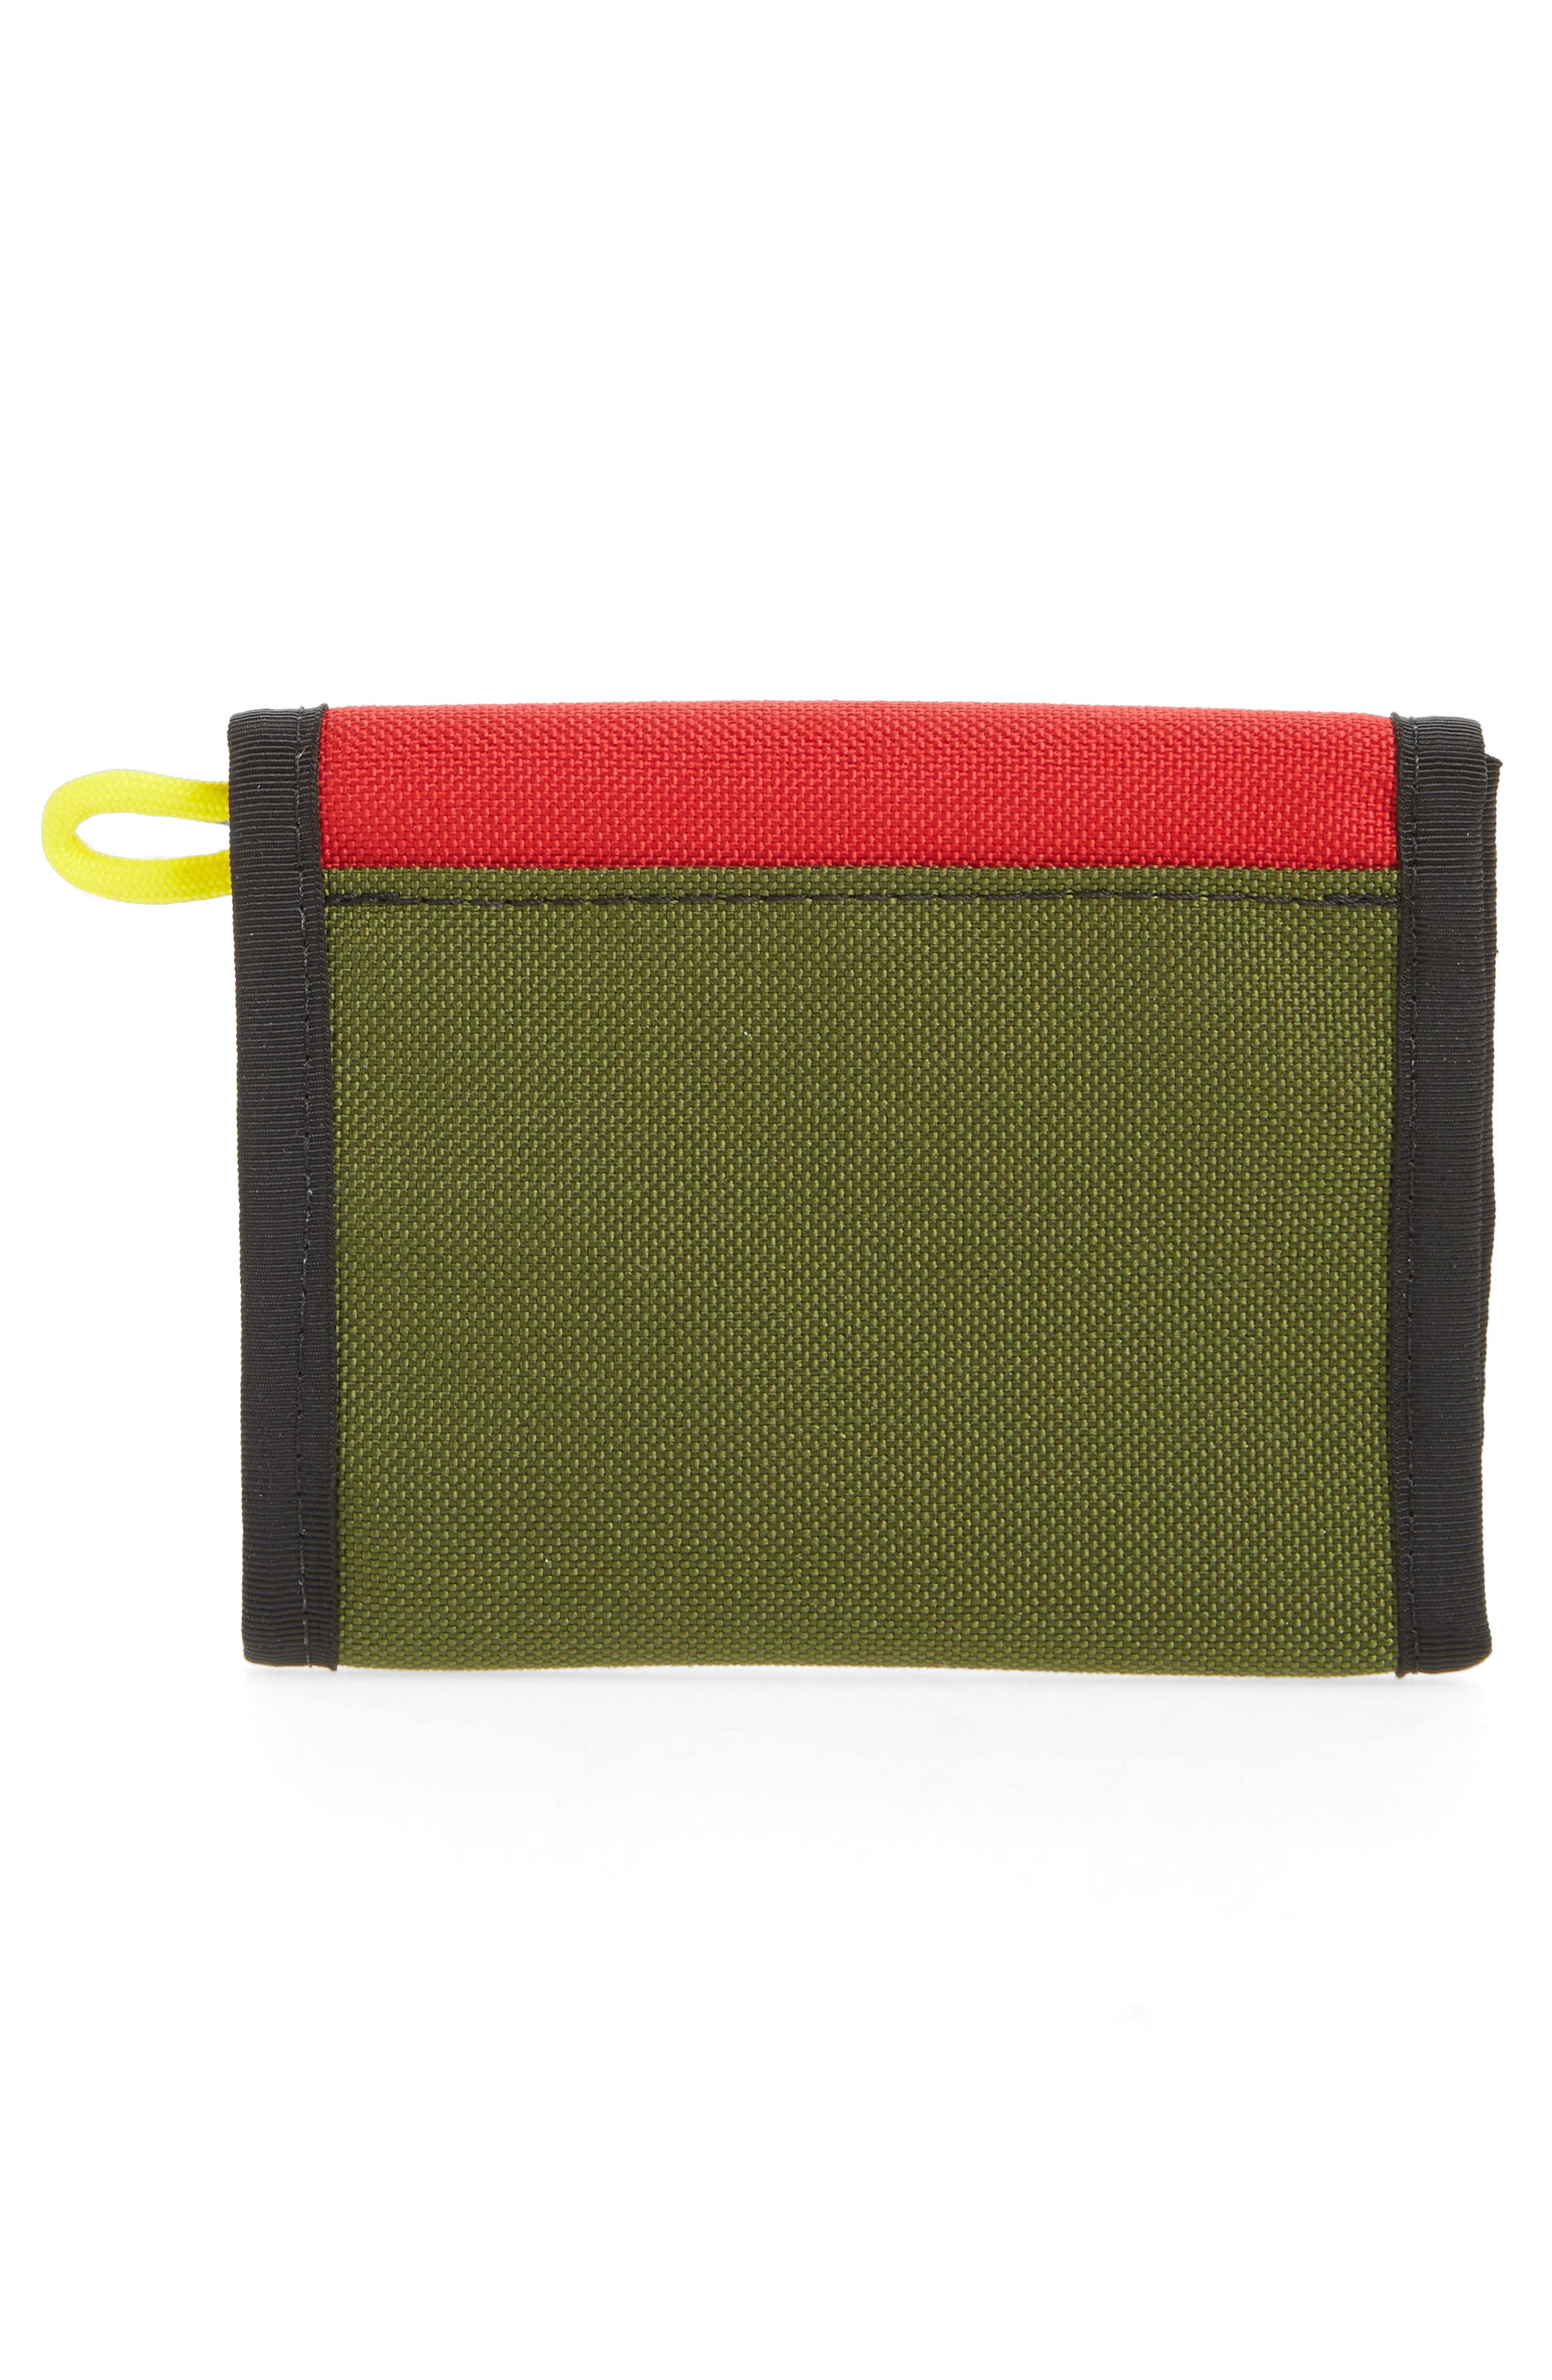 Snap Wallet,                             Alternate thumbnail 3, color,                             Red/ Olive